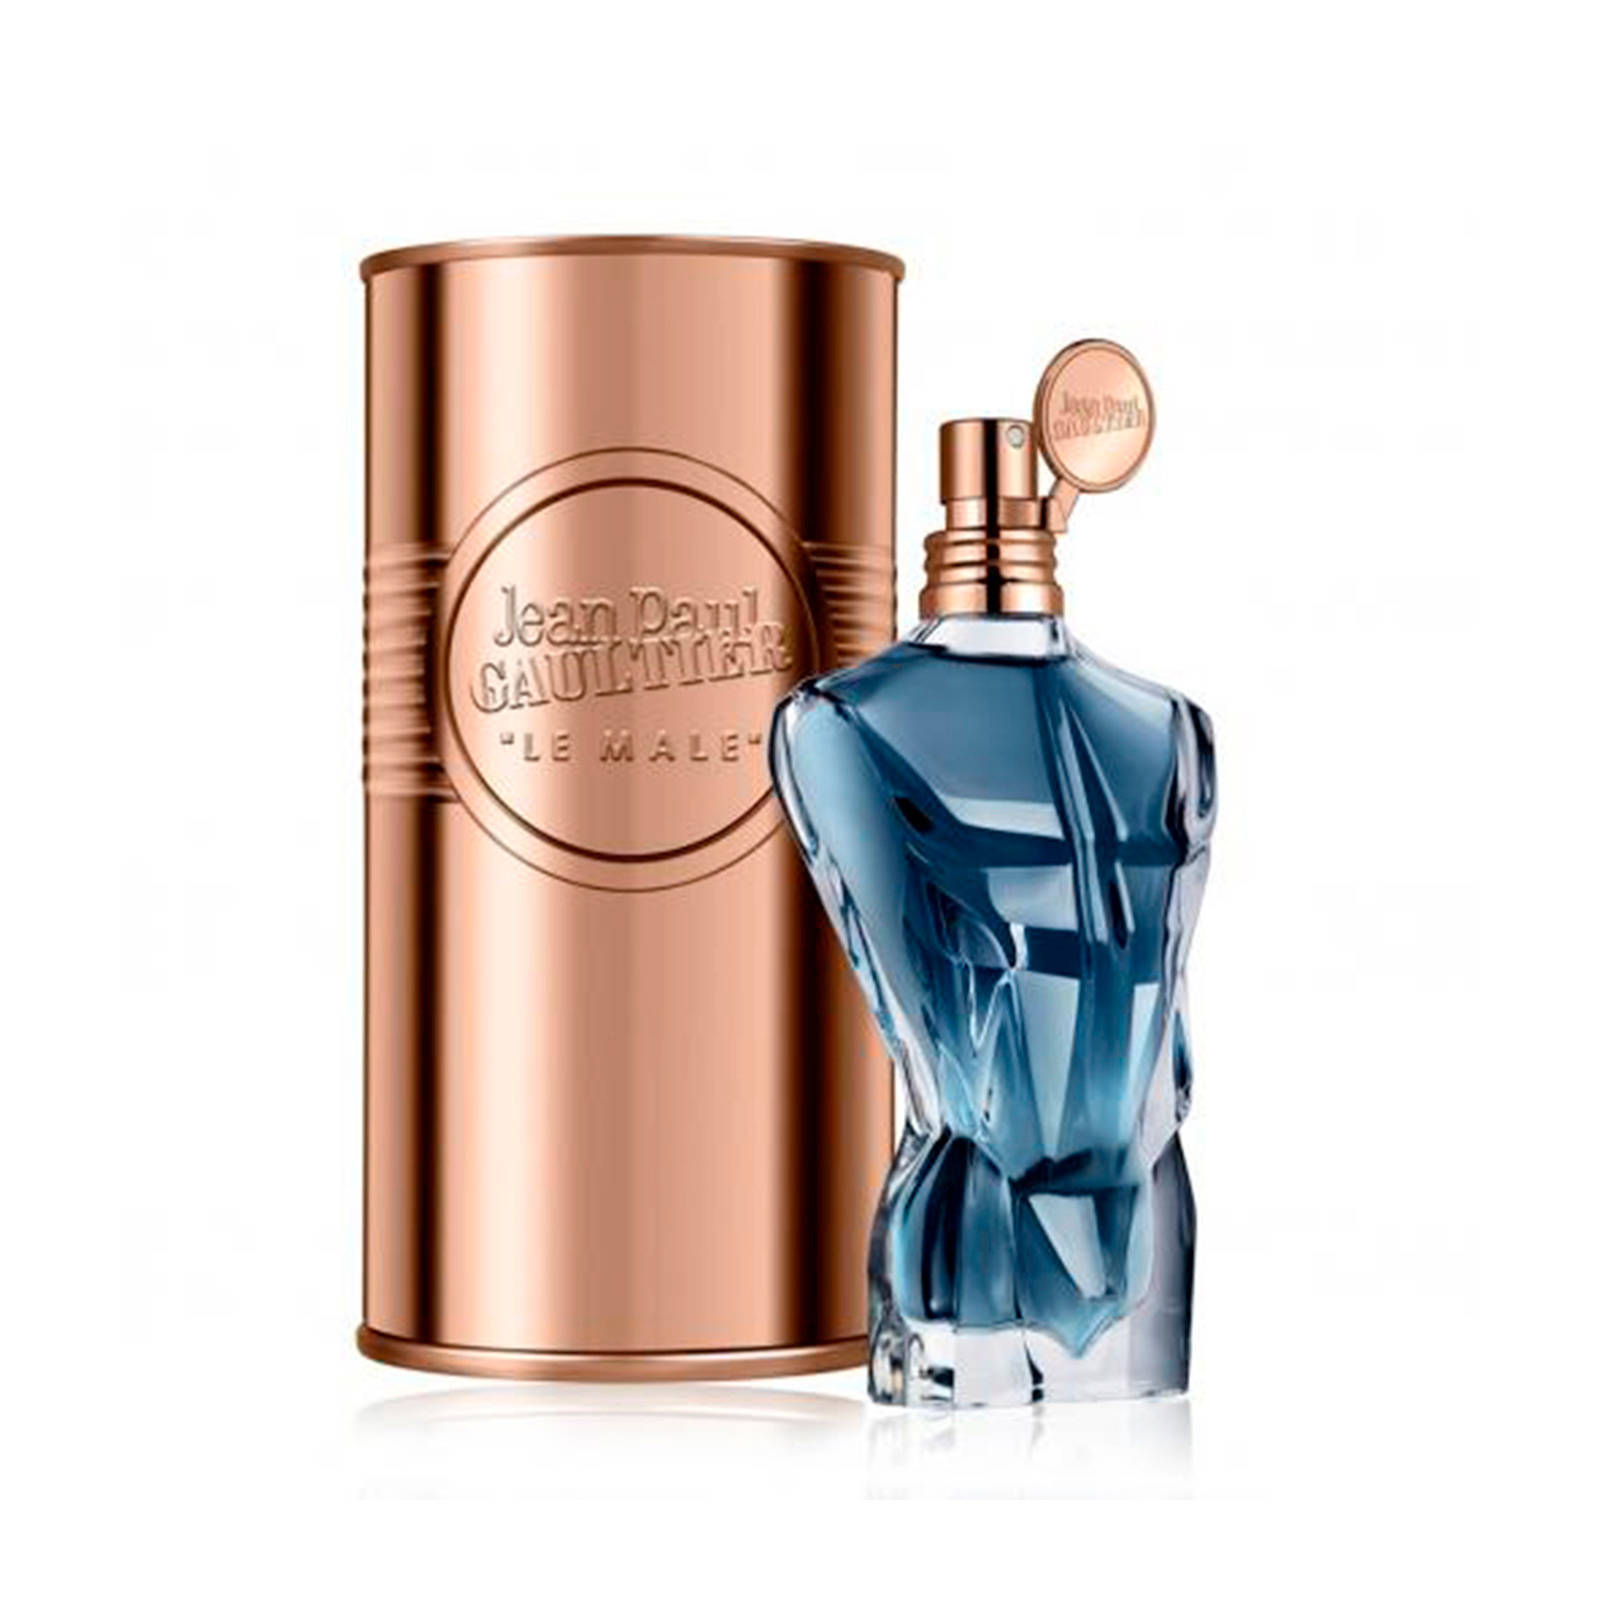 Le Male Essence Parfum Ml De Eau 75 WDHYb29eEI